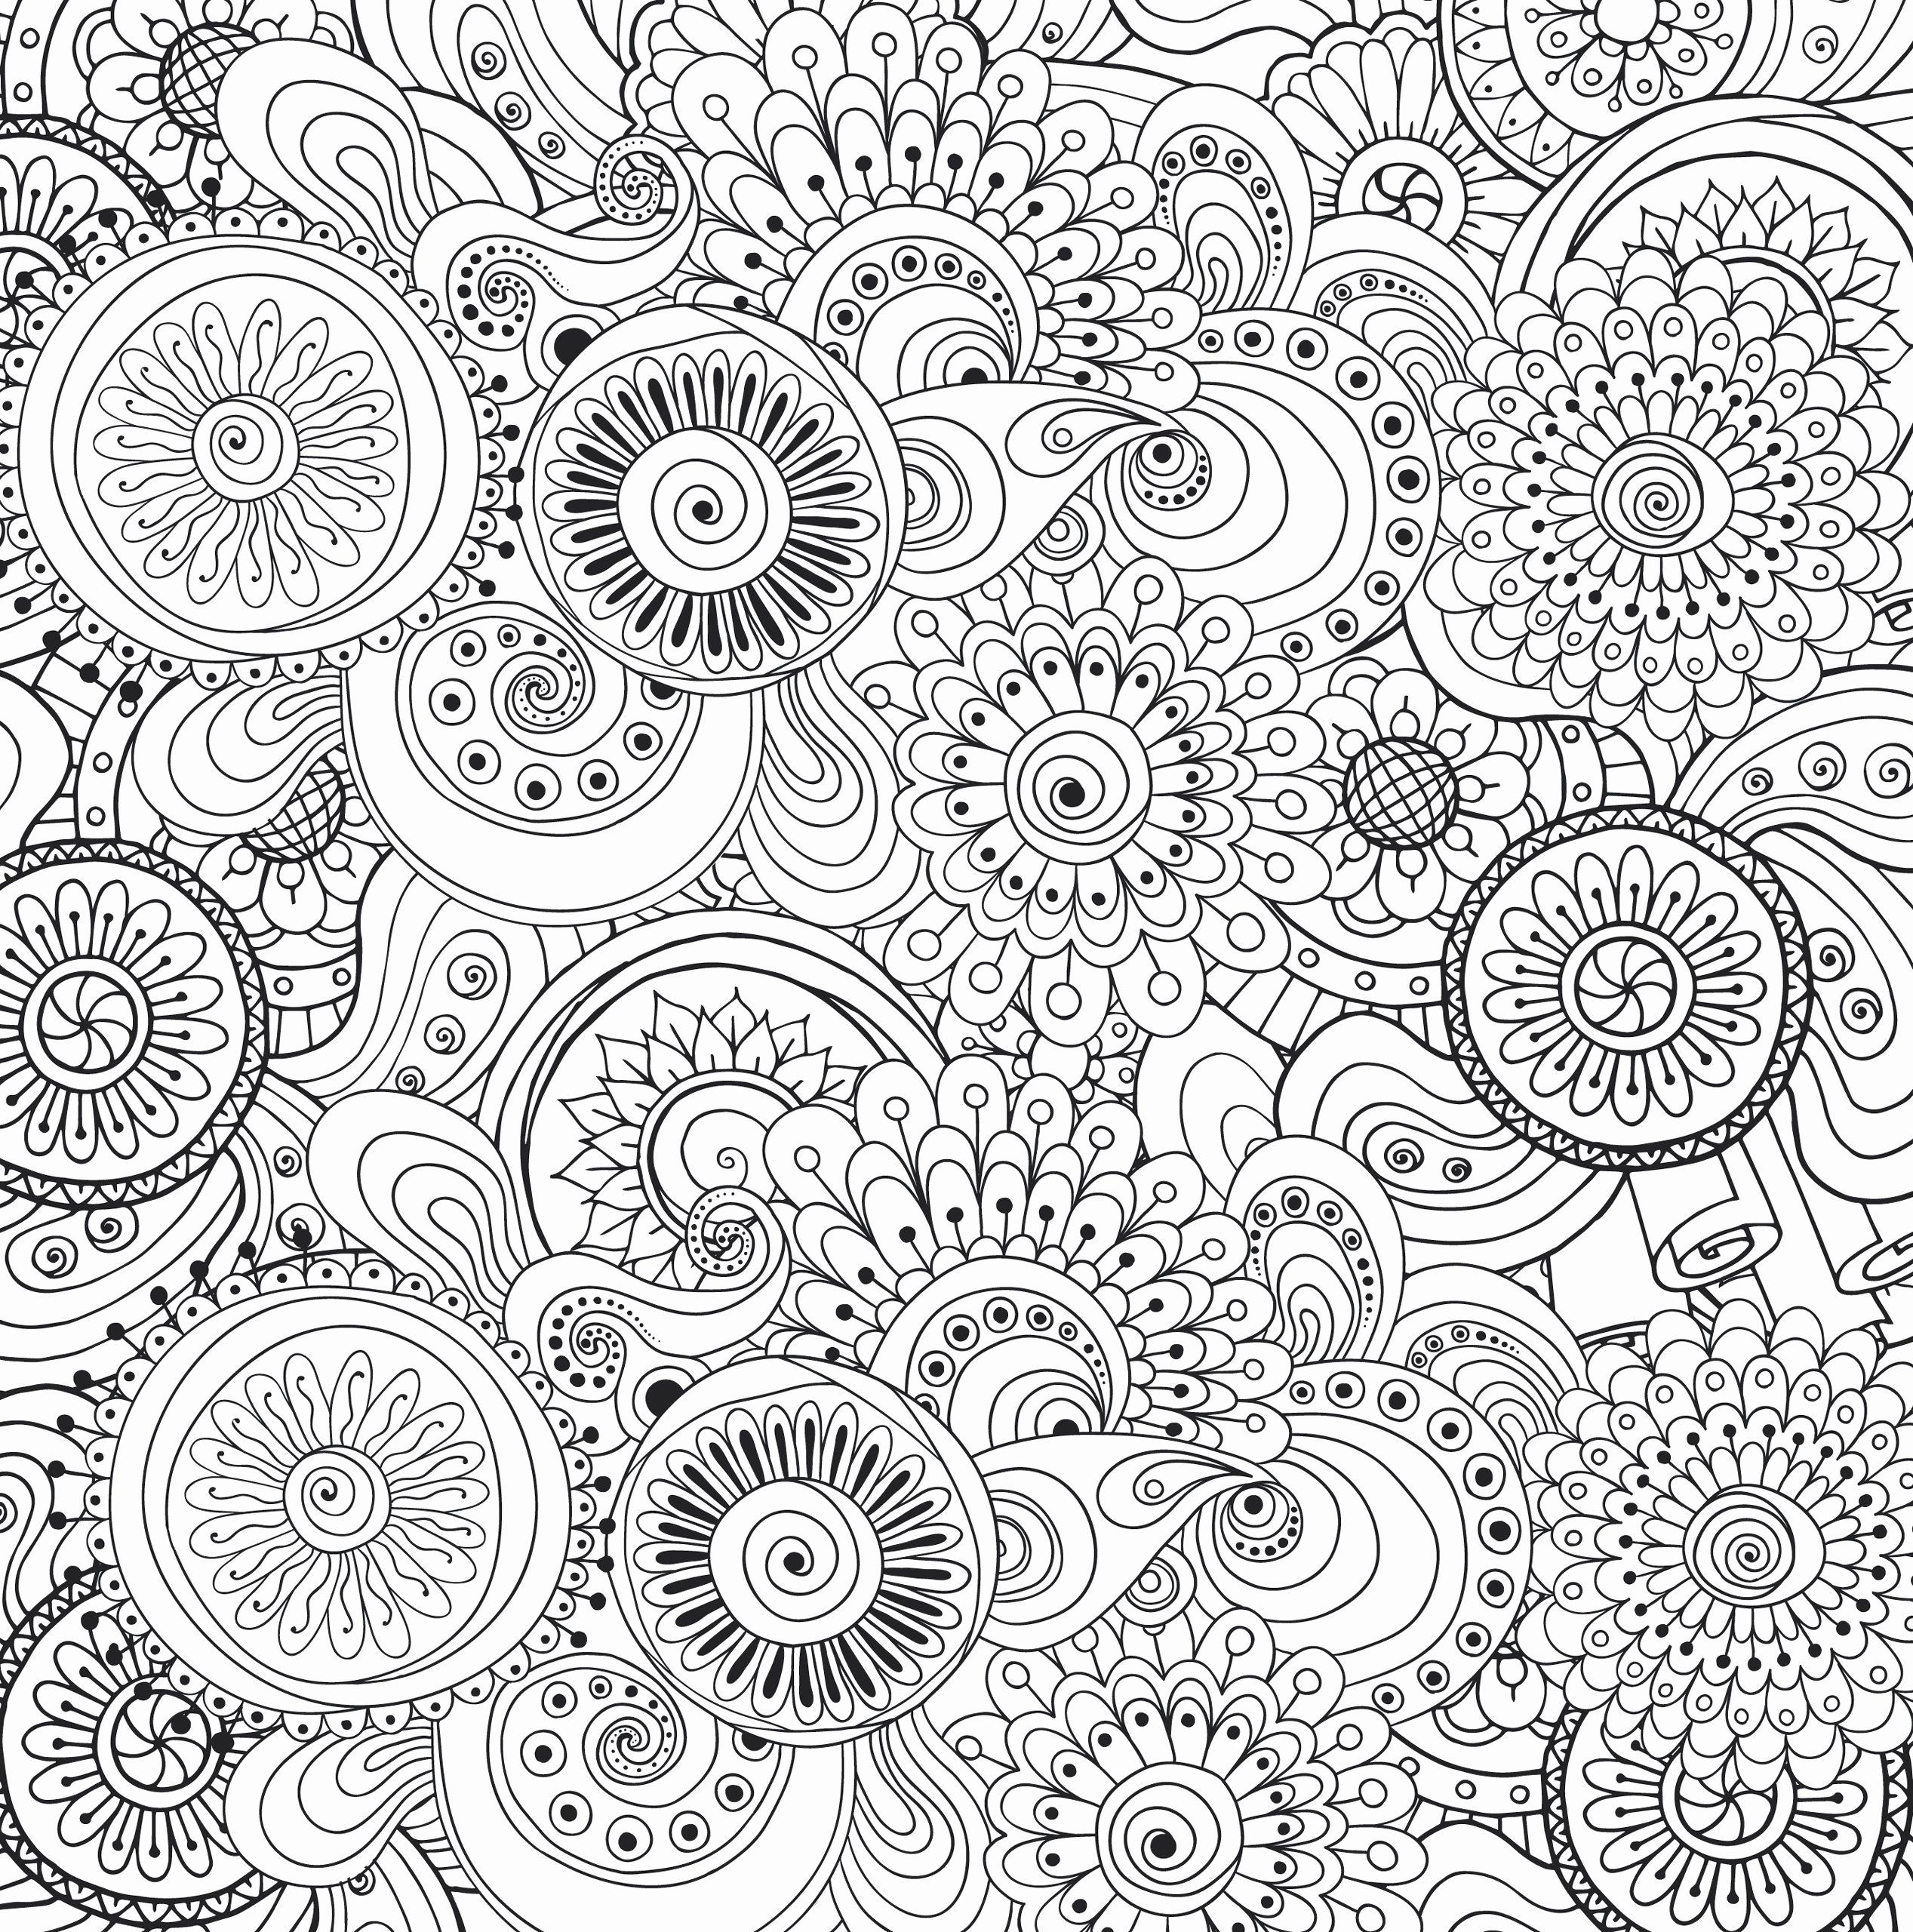 27 Adult Coloring Books Stress Relieving Patterns With Images Mandala Coloring Books Stress Coloring Book Coloring Books